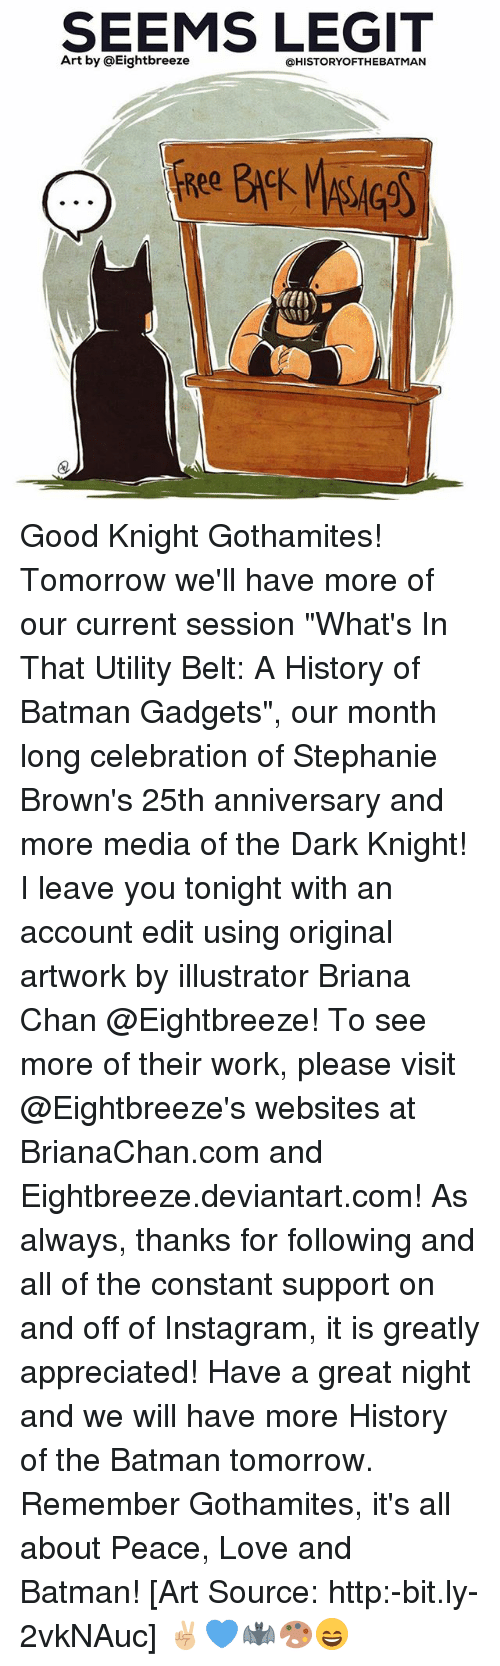 """Batman, Instagram, and Love: SEEMS LEGIT  Art by @Eightbreeze  @HISTORYOFTHEBATMAN Good Knight Gothamites! Tomorrow we'll have more of our current session """"What's In That Utility Belt: A History of Batman Gadgets"""", our month long celebration of Stephanie Brown's 25th anniversary and more media of the Dark Knight! I leave you tonight with an account edit using original artwork by illustrator Briana Chan @Eightbreeze! To see more of their work, please visit @Eightbreeze's websites at BrianaChan.com and Eightbreeze.deviantart.com! As always, thanks for following and all of the constant support on and off of Instagram, it is greatly appreciated! Have a great night and we will have more History of the Batman tomorrow. Remember Gothamites, it's all about Peace, Love and Batman! [Art Source: http:-bit.ly-2vkNAuc] ✌🏼💙🦇🎨😄"""